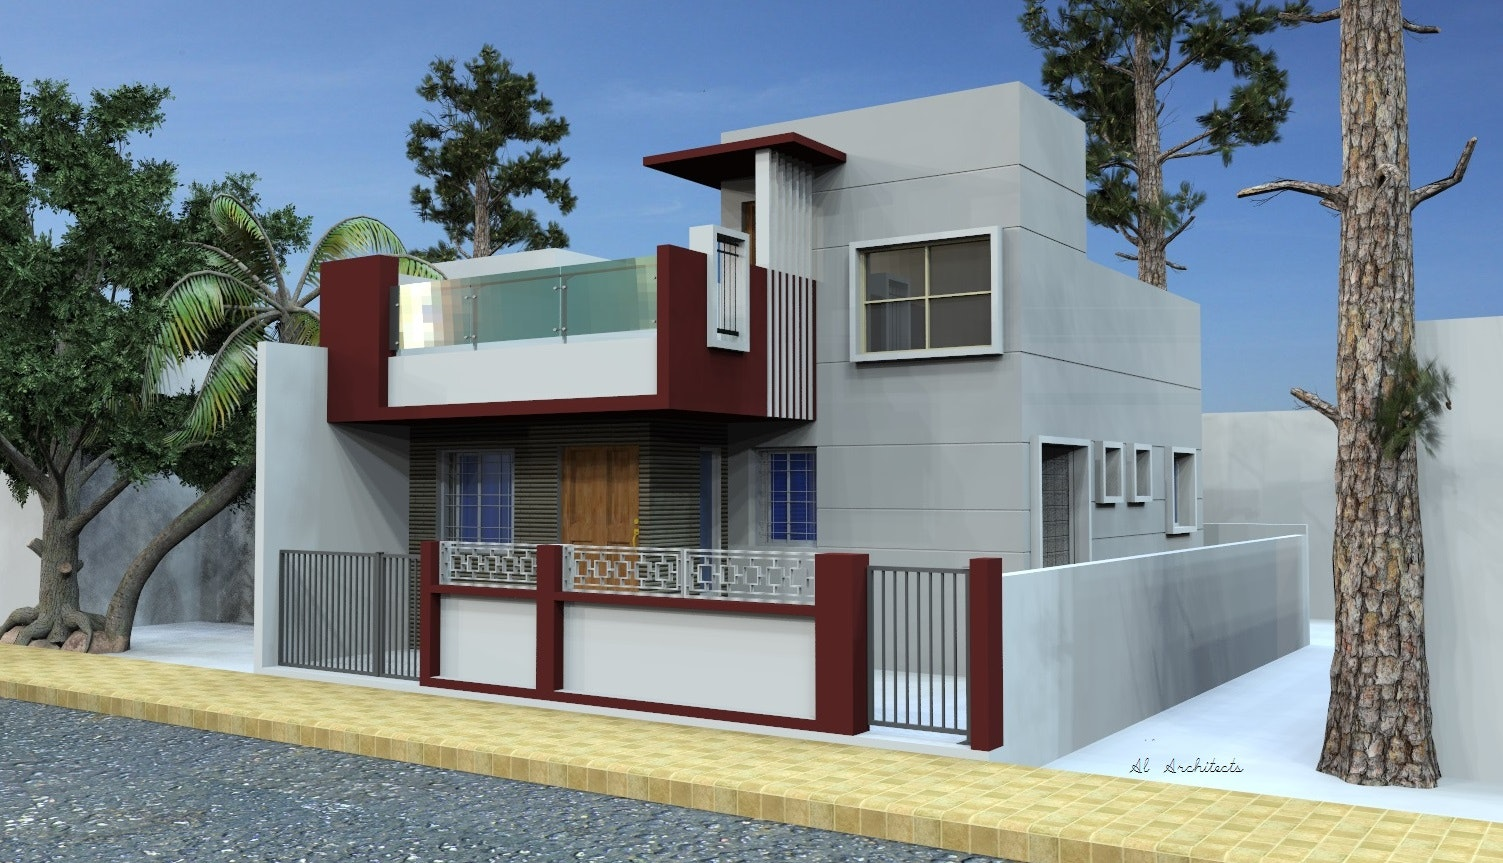 row houses and residences   exterior view and working